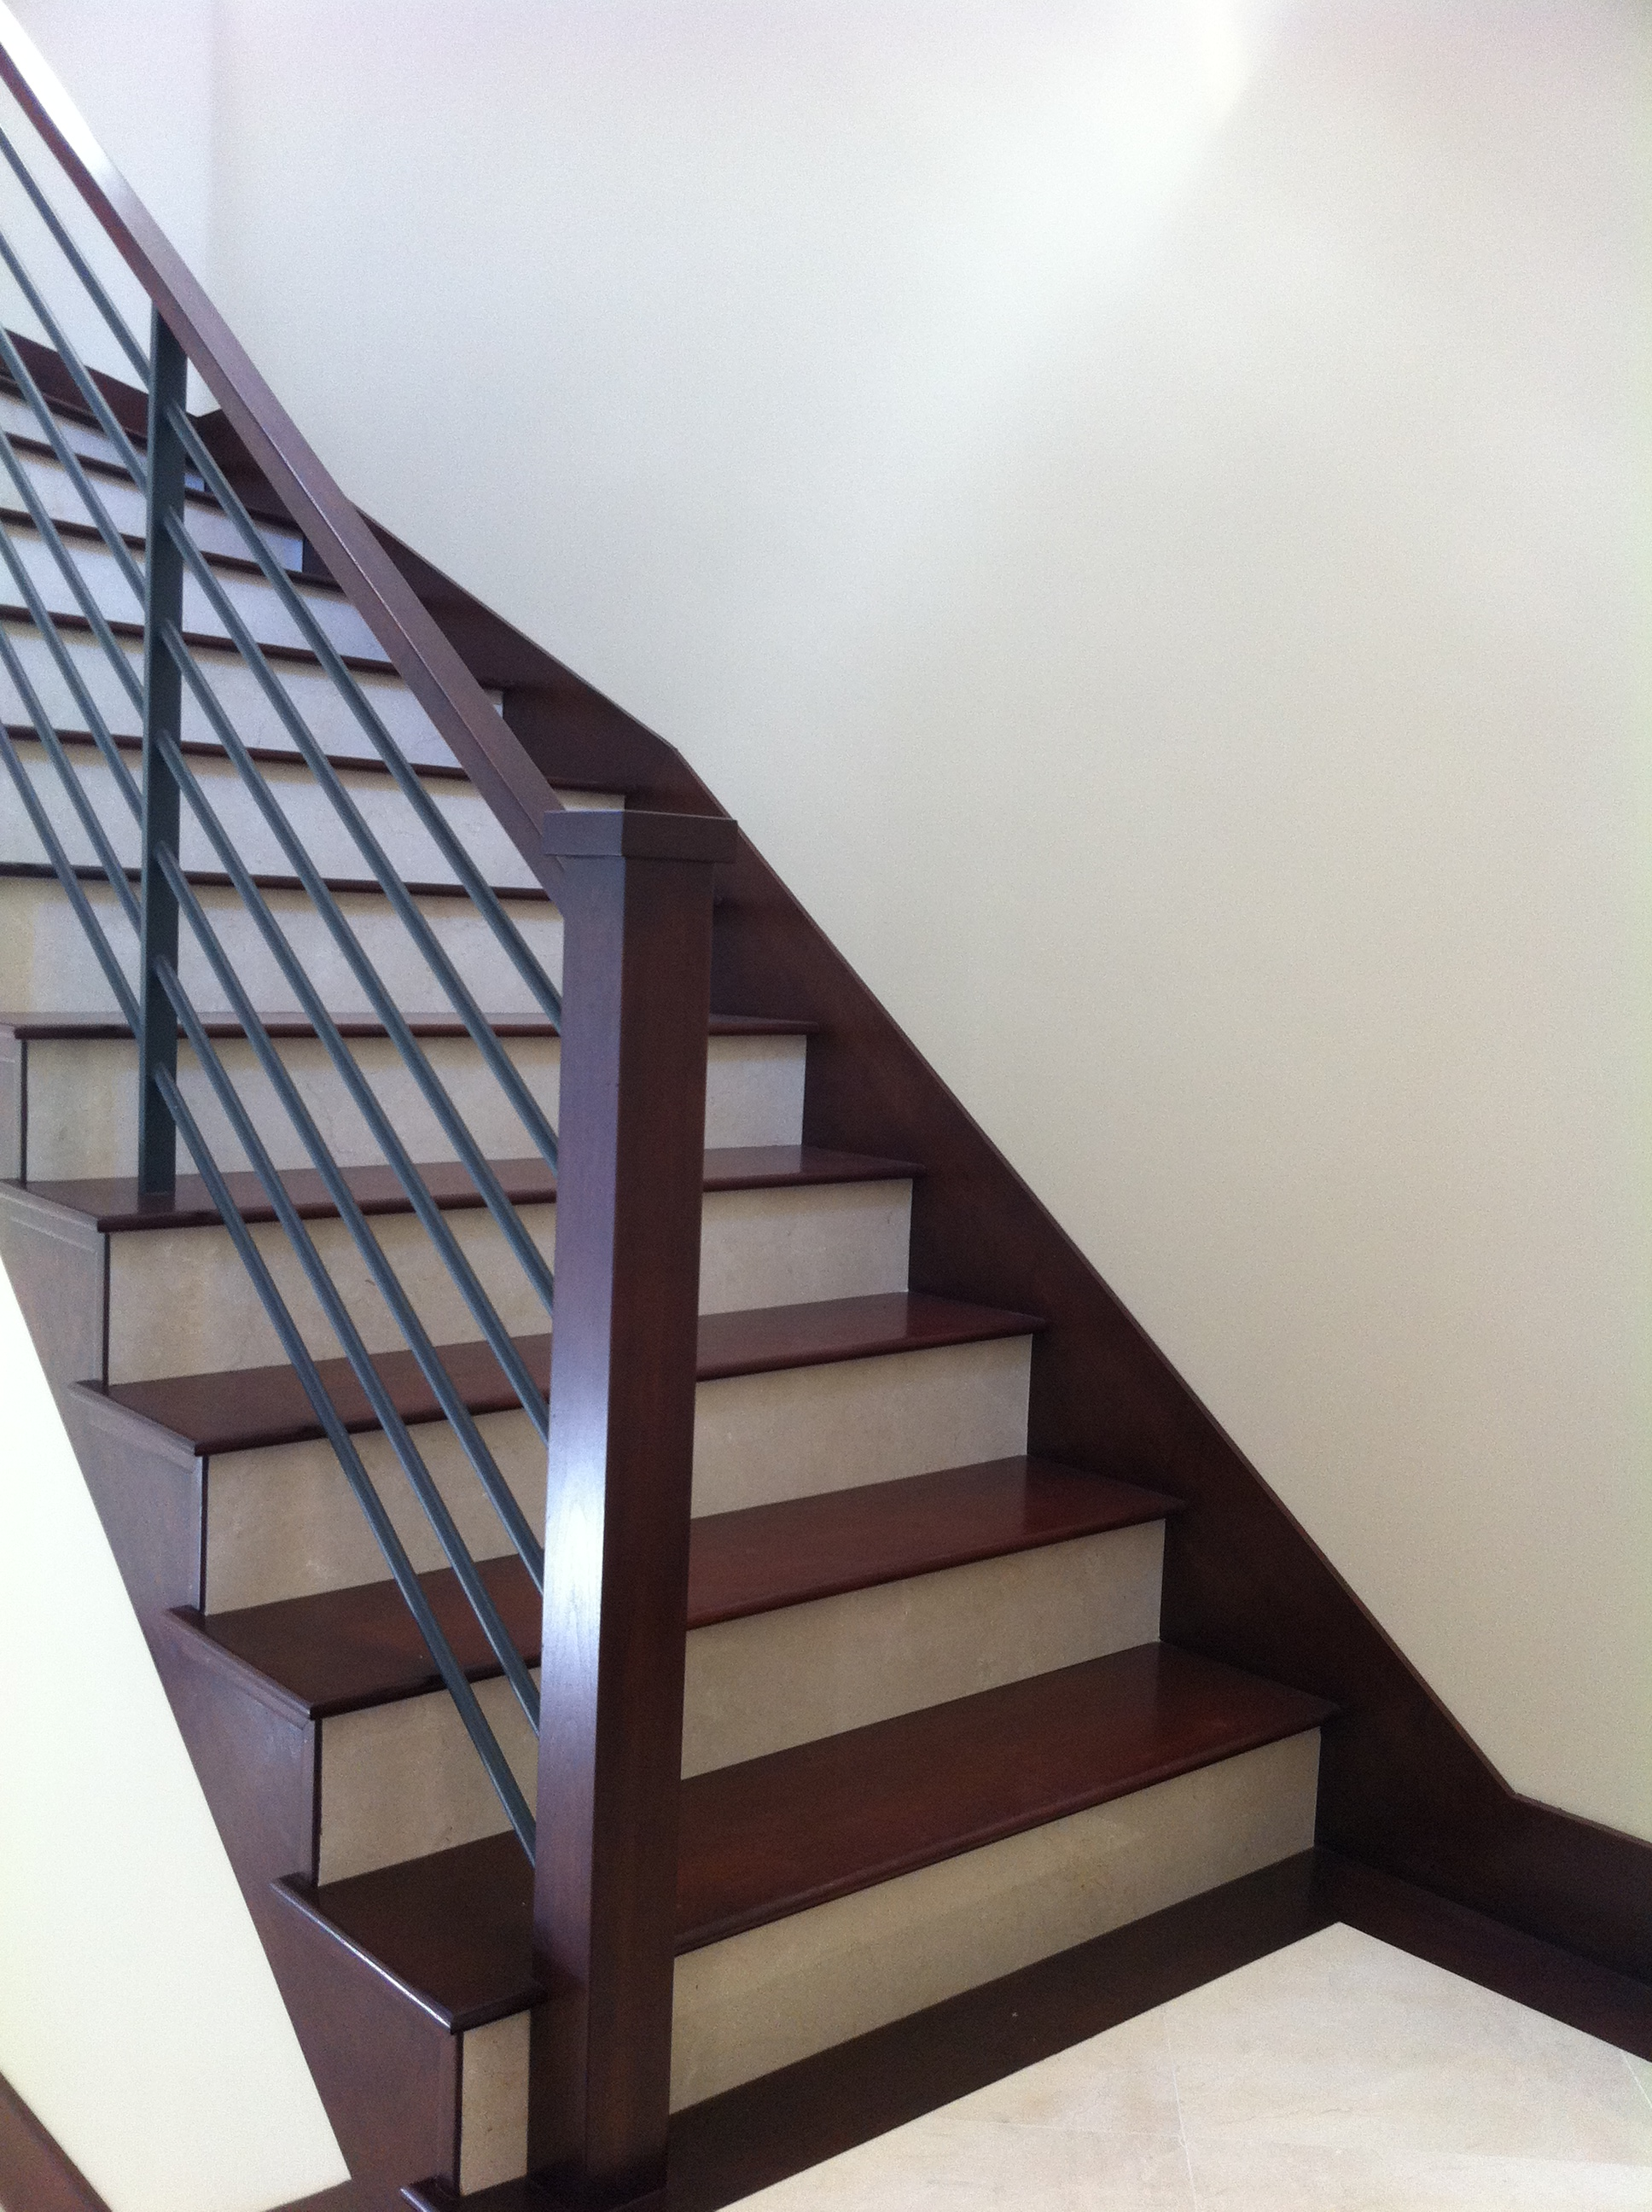 Wood stairs baseboards - Stairs with tile and wood ...